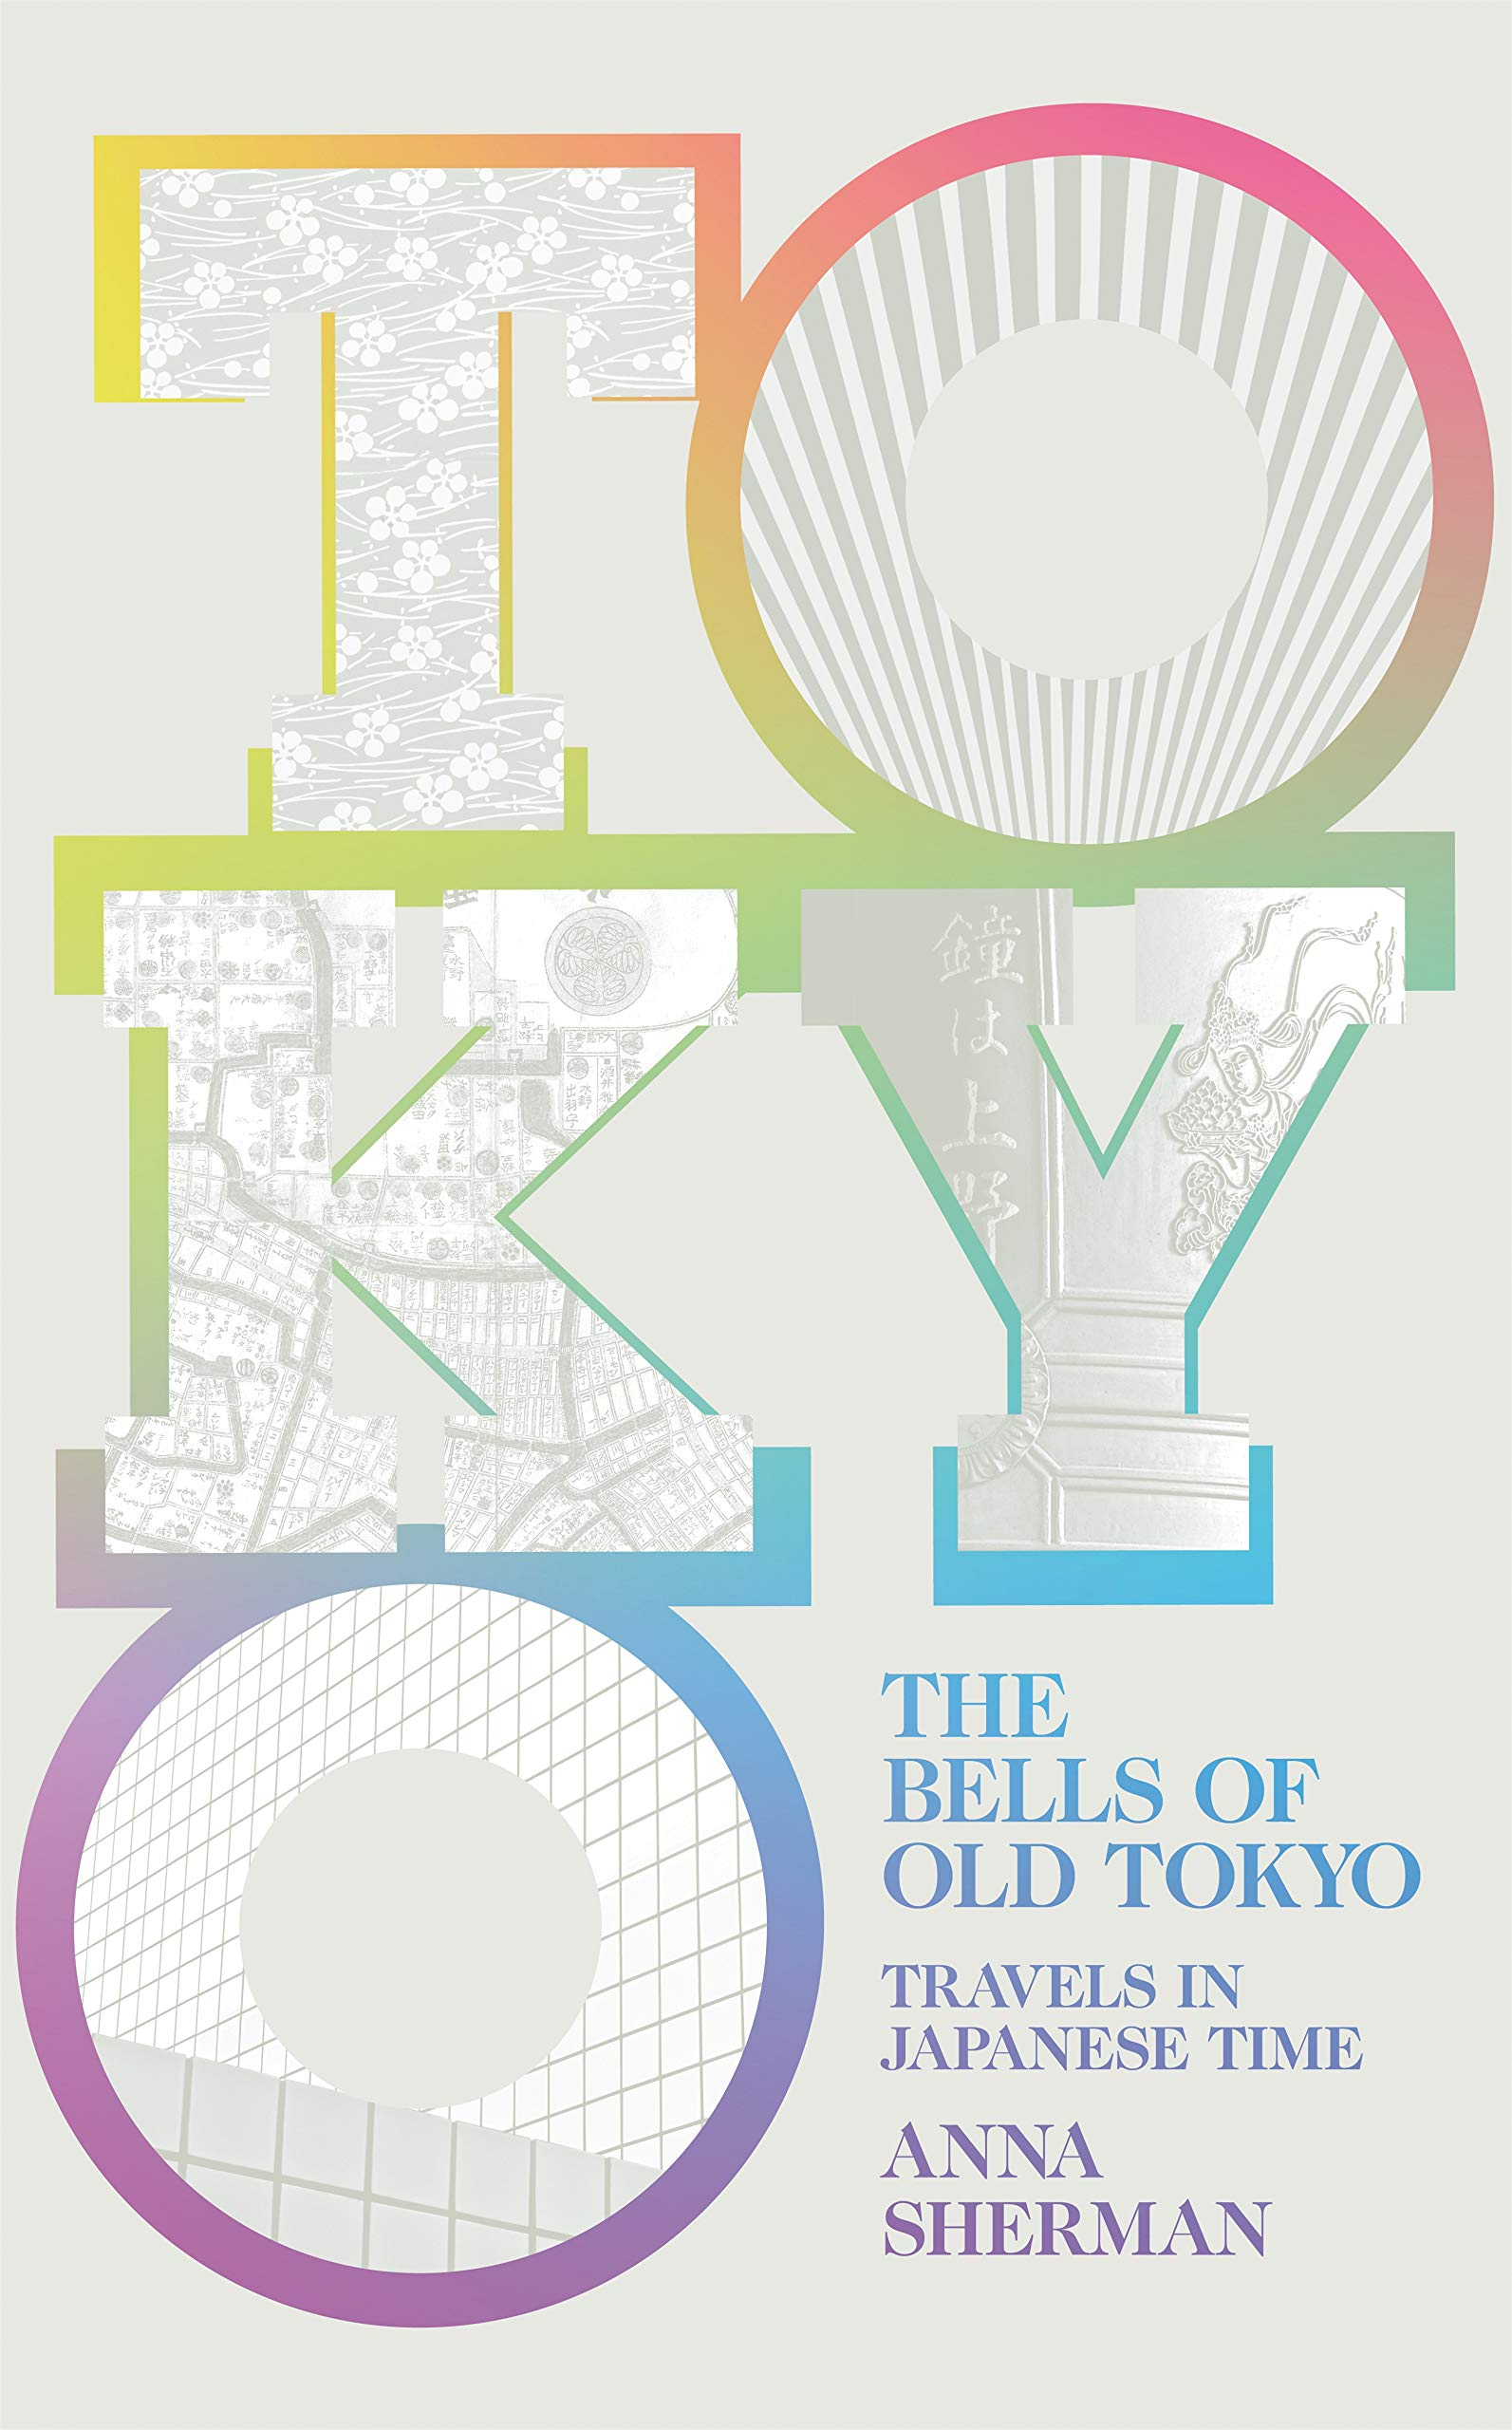 7 Japan Travel Books To Inspire Future Trips The Bells Of Old Tokyo